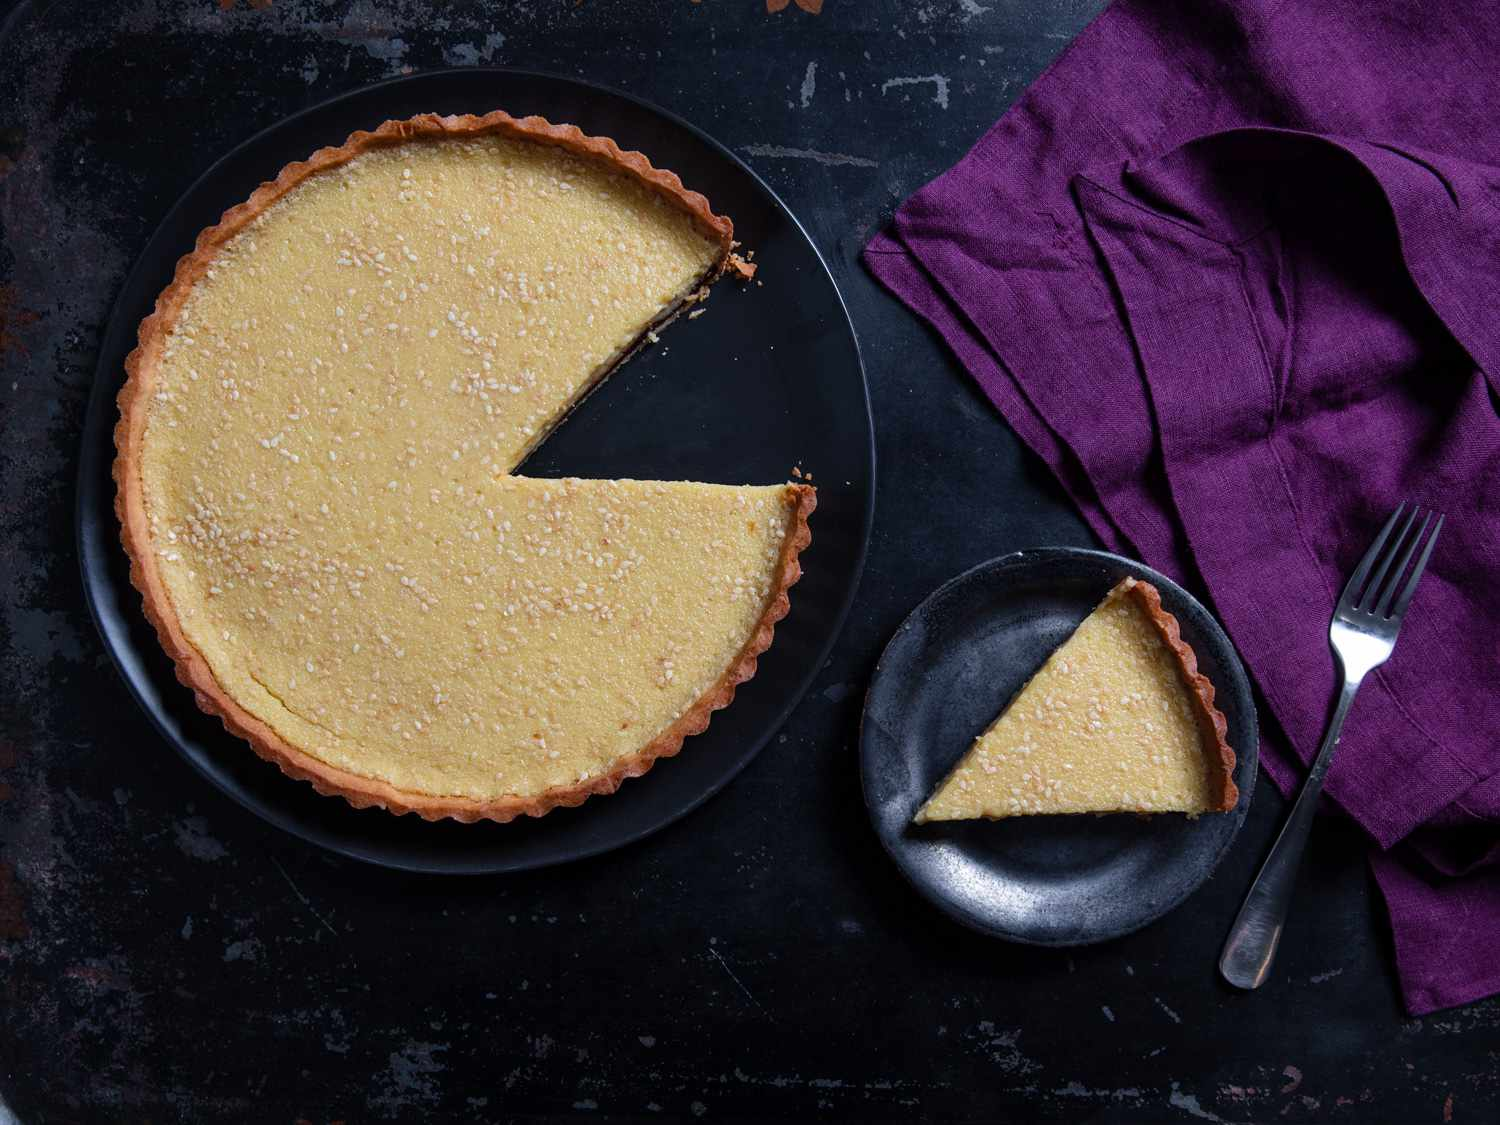 an overhead shot of a slice of toasted white sesame tart with bittersweet chocolate ganache next to the full tart